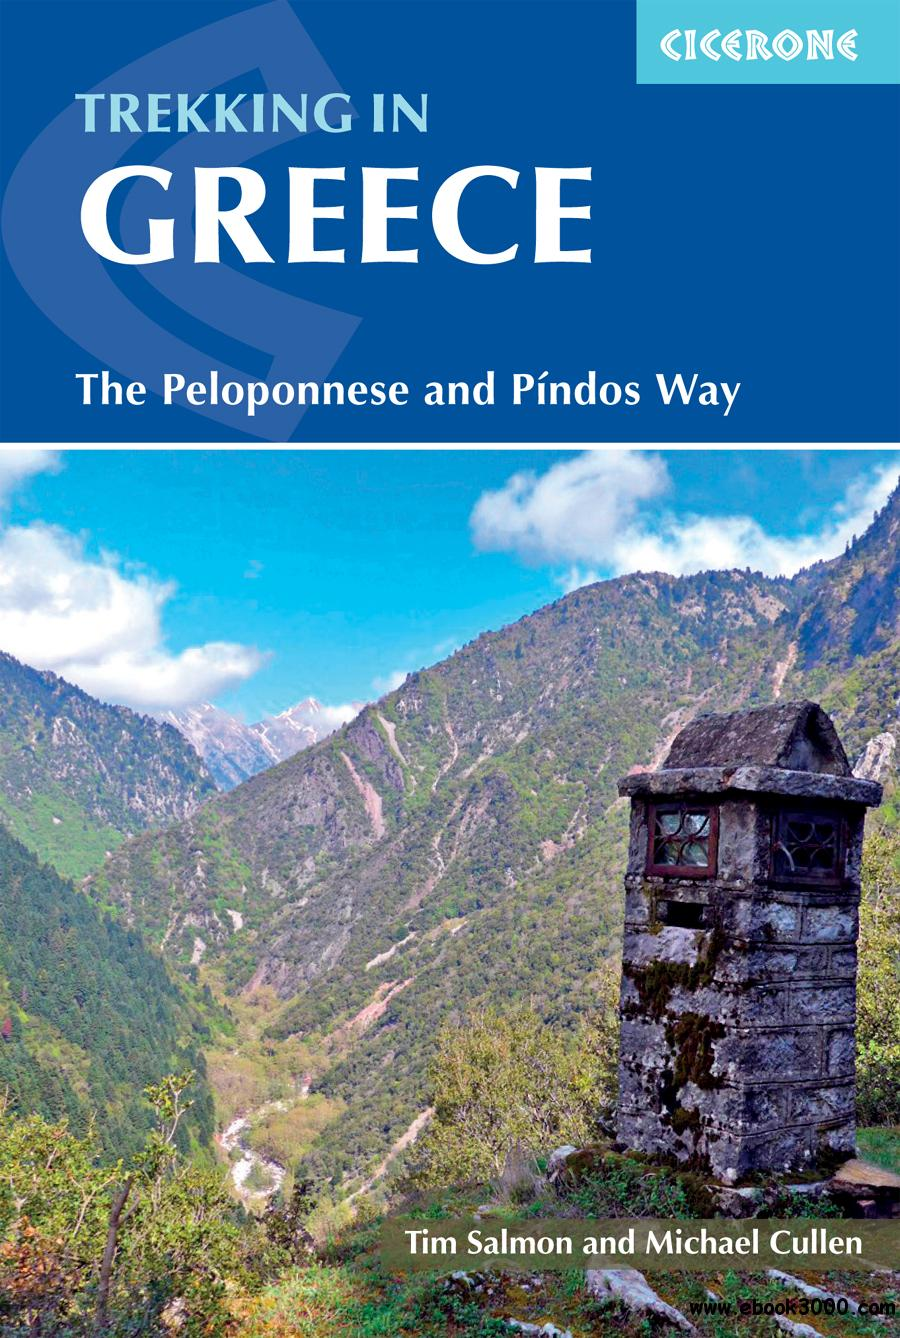 Trekking in Greece: The Peloponnese and Pindos Way (International Trekking), 3rd Edition